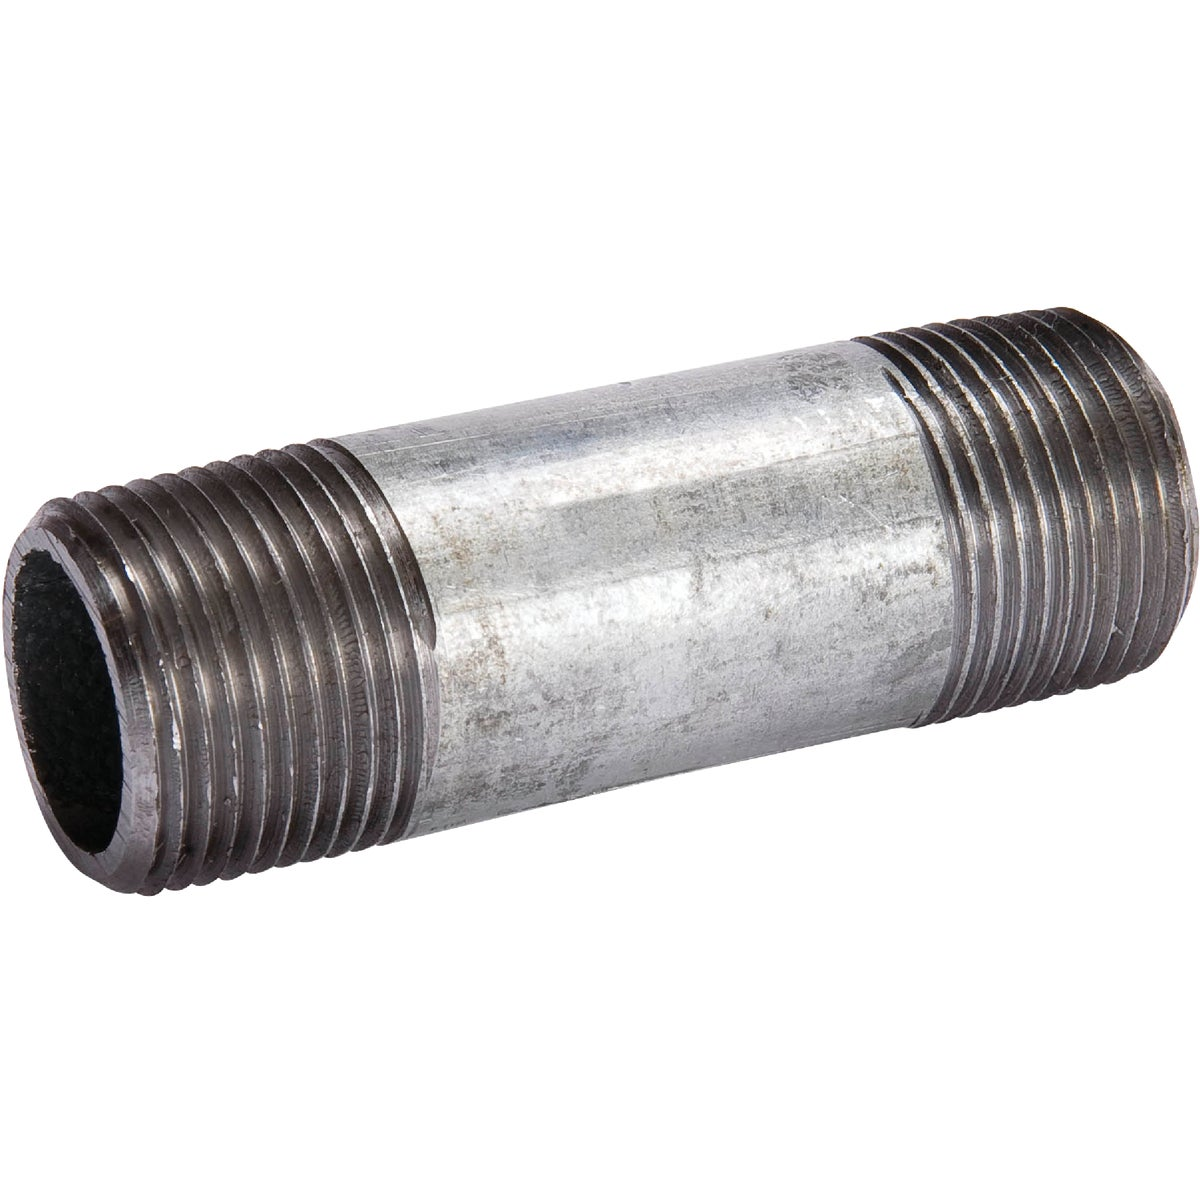 1/2X7 GALV NIPPLE - 10411 by Southland Pipe Nippl